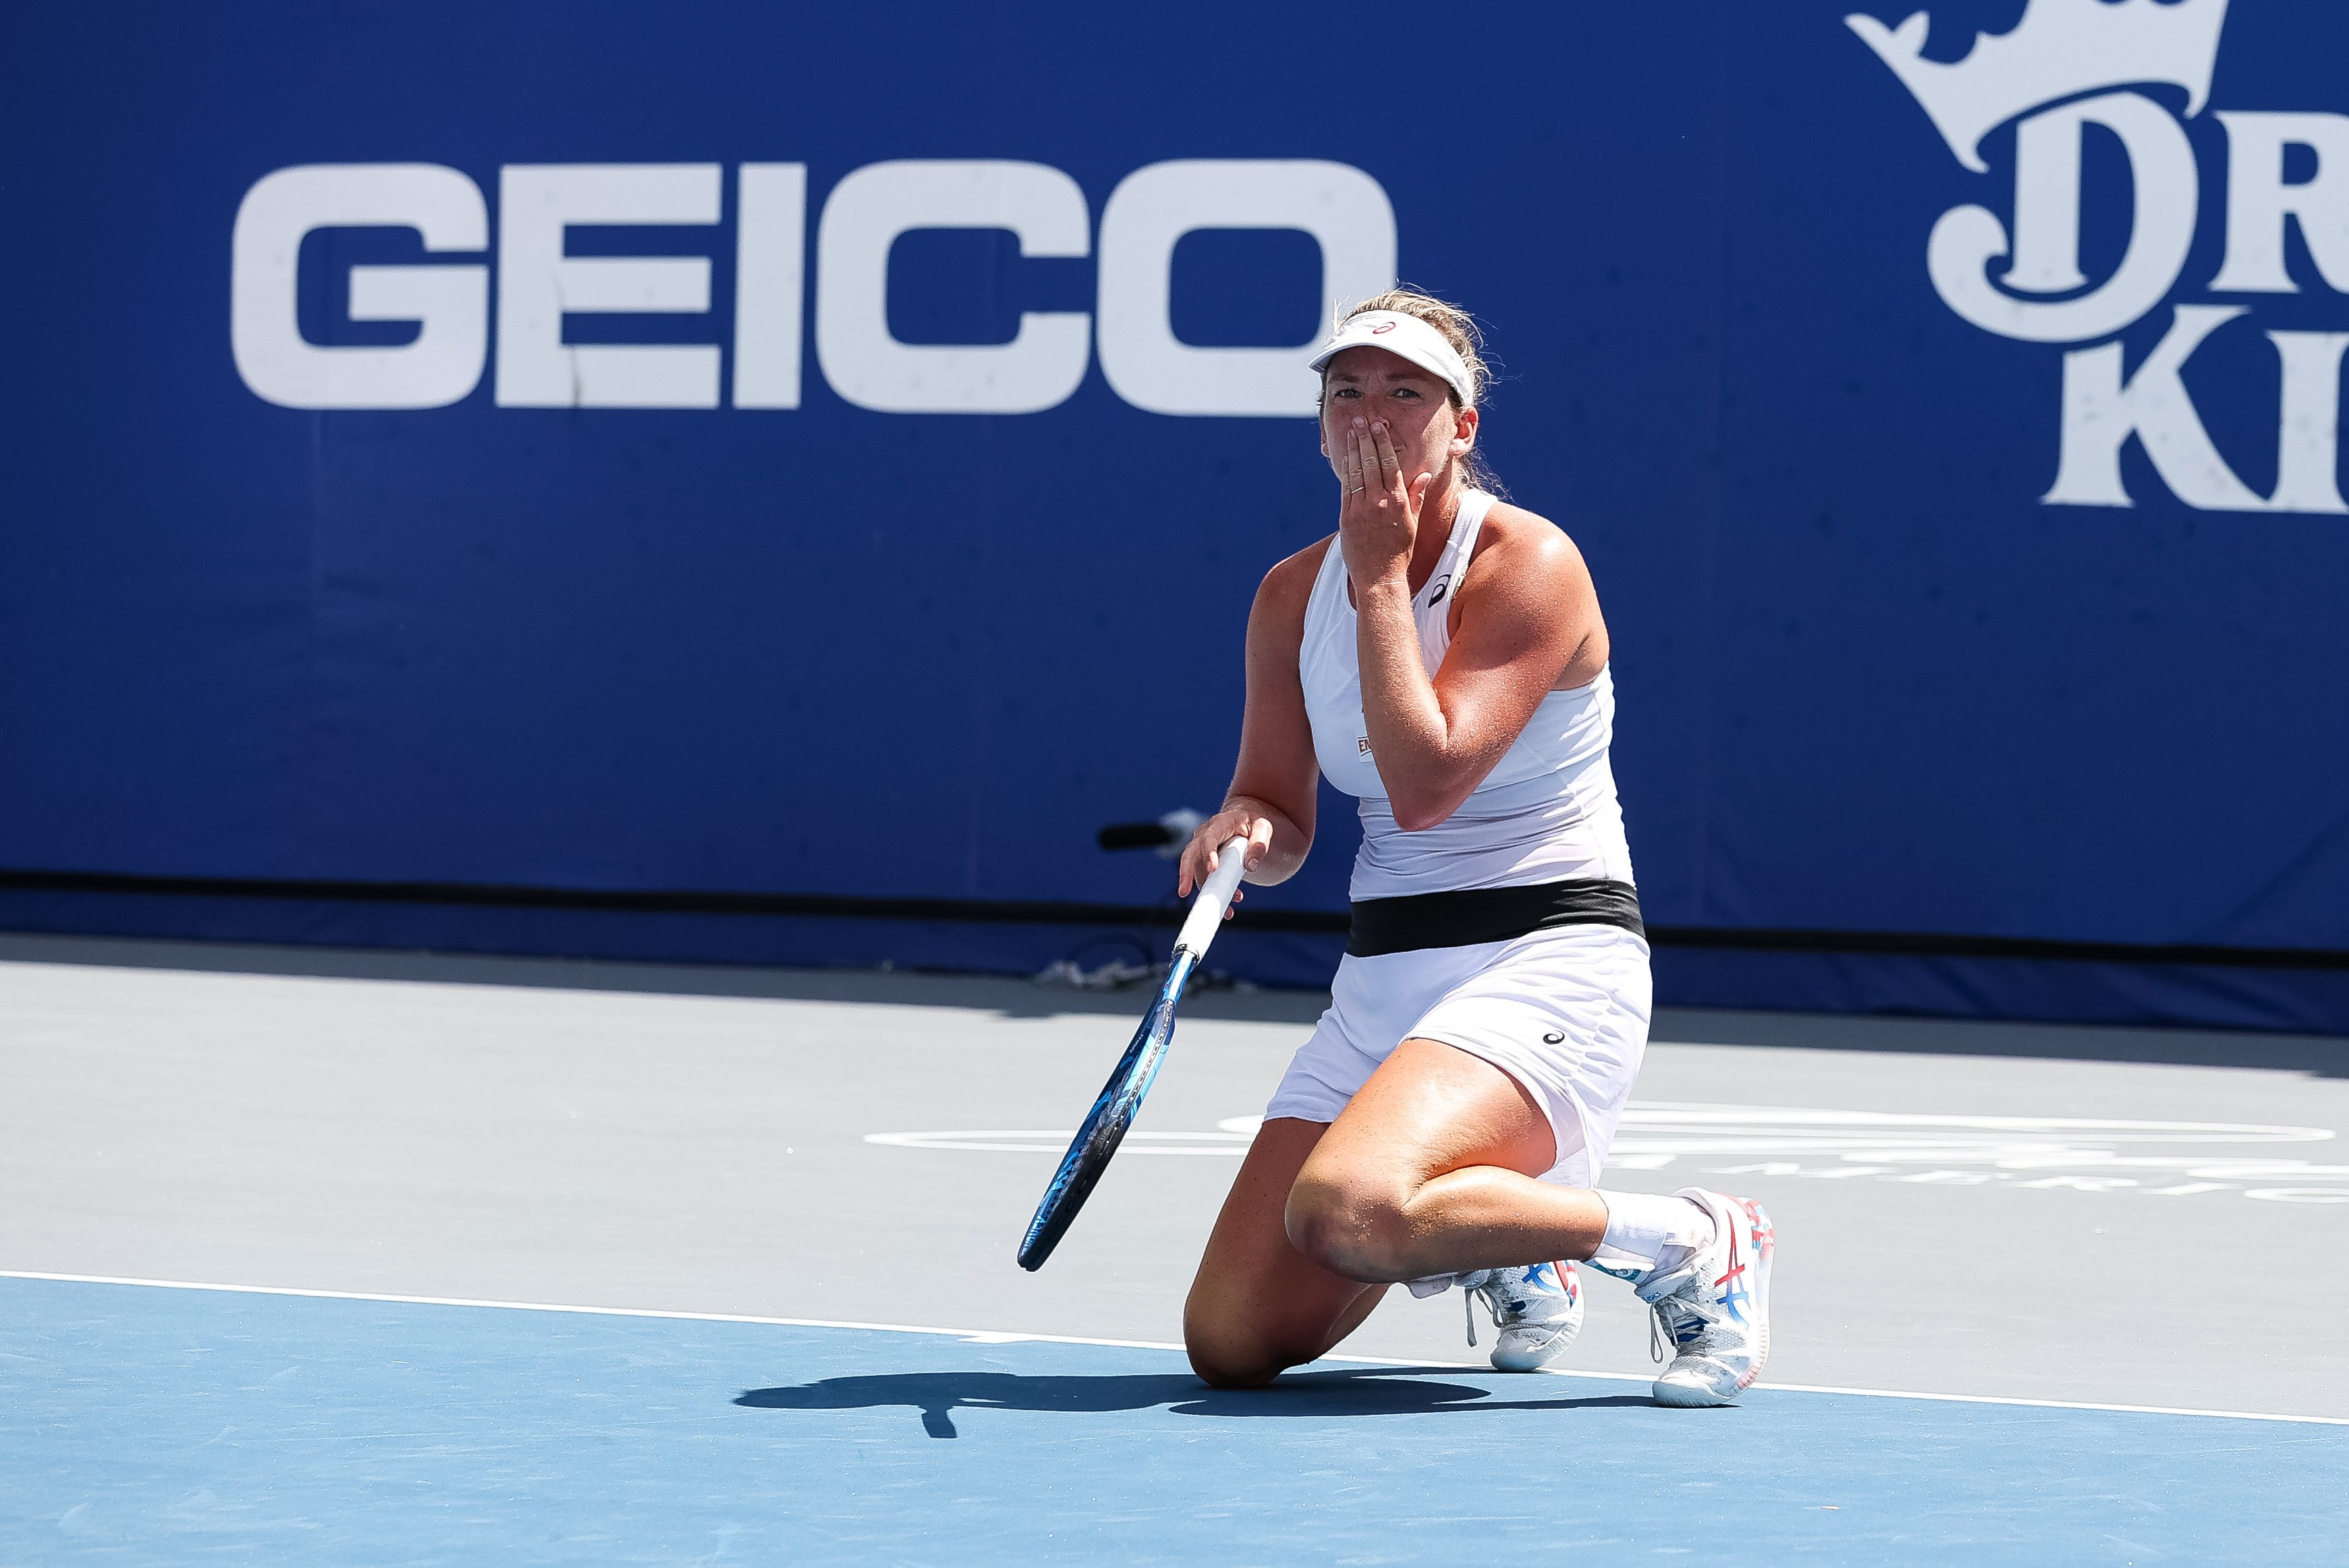 Coco Vandeweghe celebrates after winning the final point in the New York Empire's championship victory.